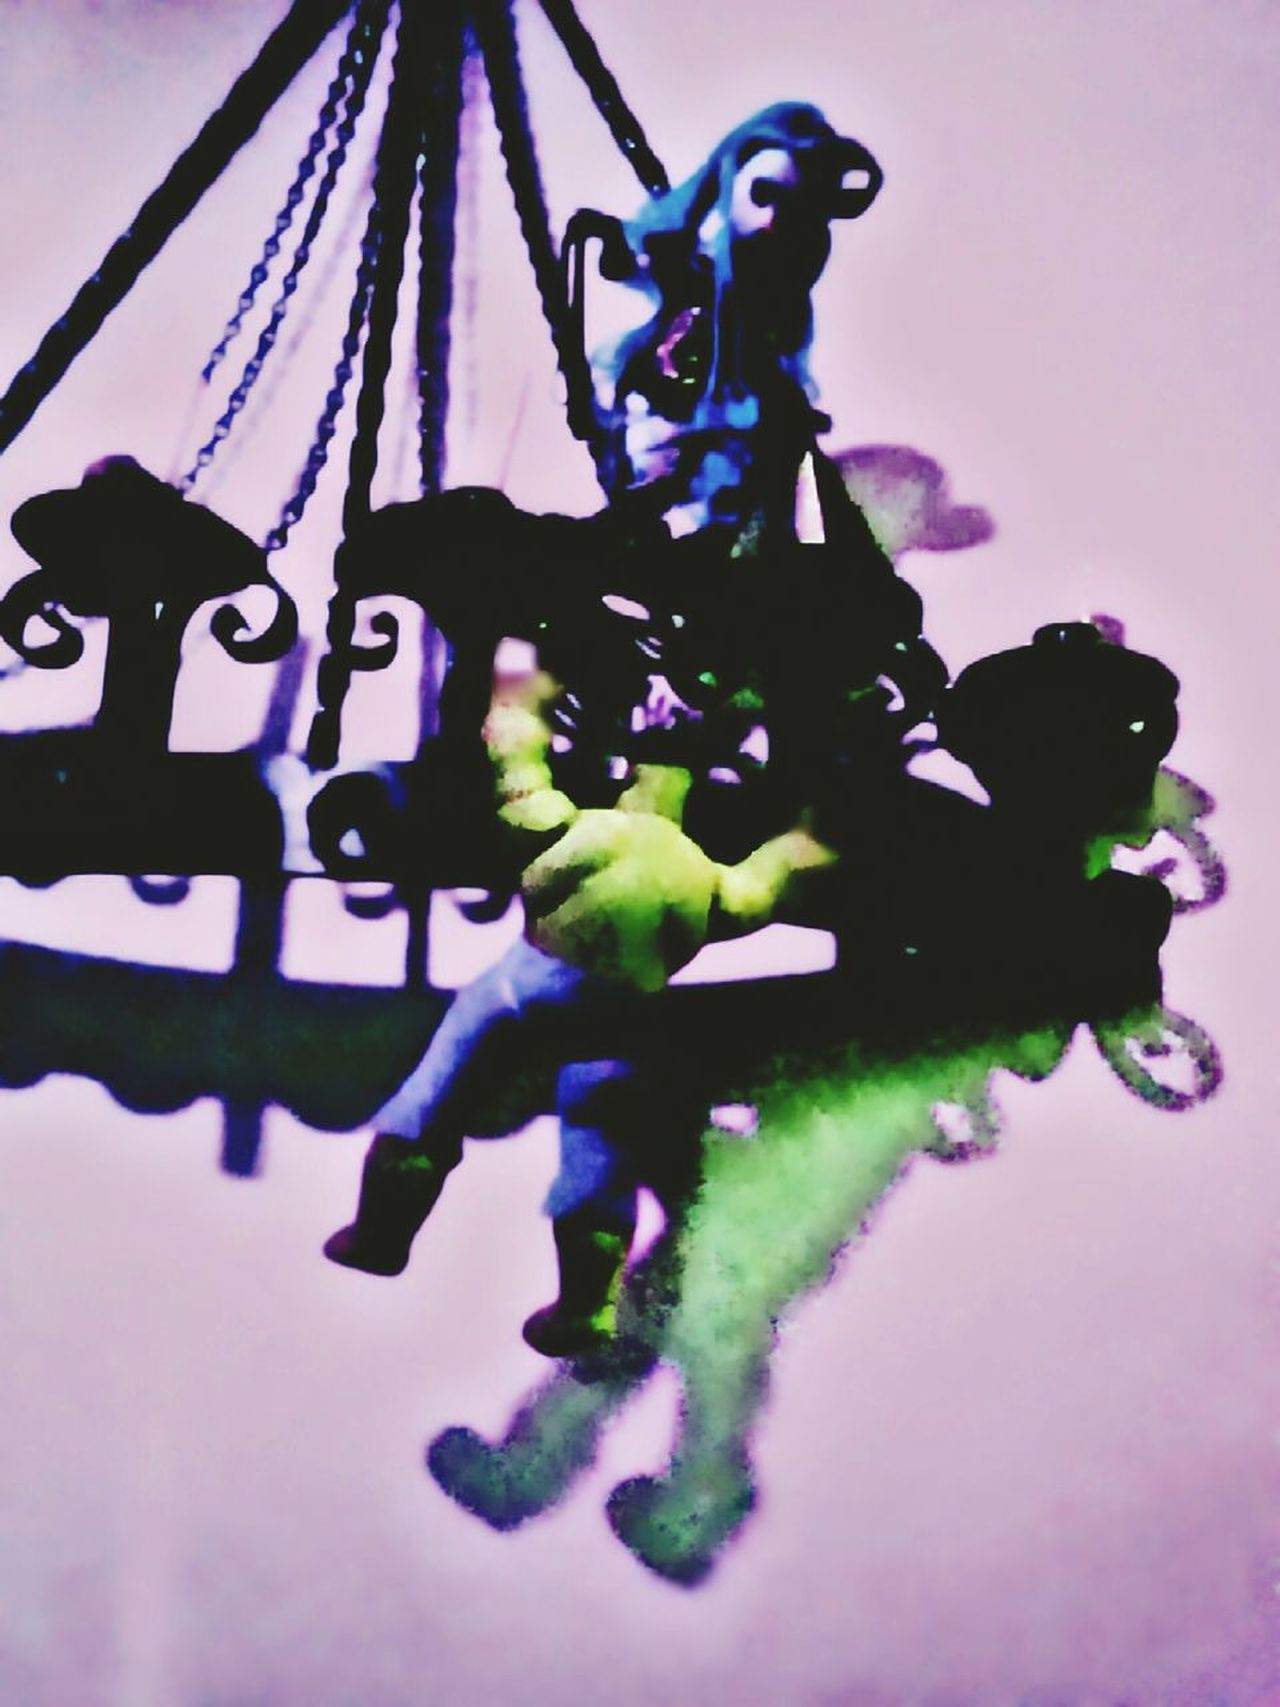 Chandeliercreative Chandelierlove Chandelabra Chandelier Edit Chandelier Hanging Around Hanging On Hulkmode Hulk The Hulk Thehulk Incredible Hulk The Incredible Hulk Toys Toy Photography Dolls Rescue Greenlove Theincrediblehulk IncredibleHulk Toyphotography Damsel In Distress DamselInDistress Clinging On Clinging